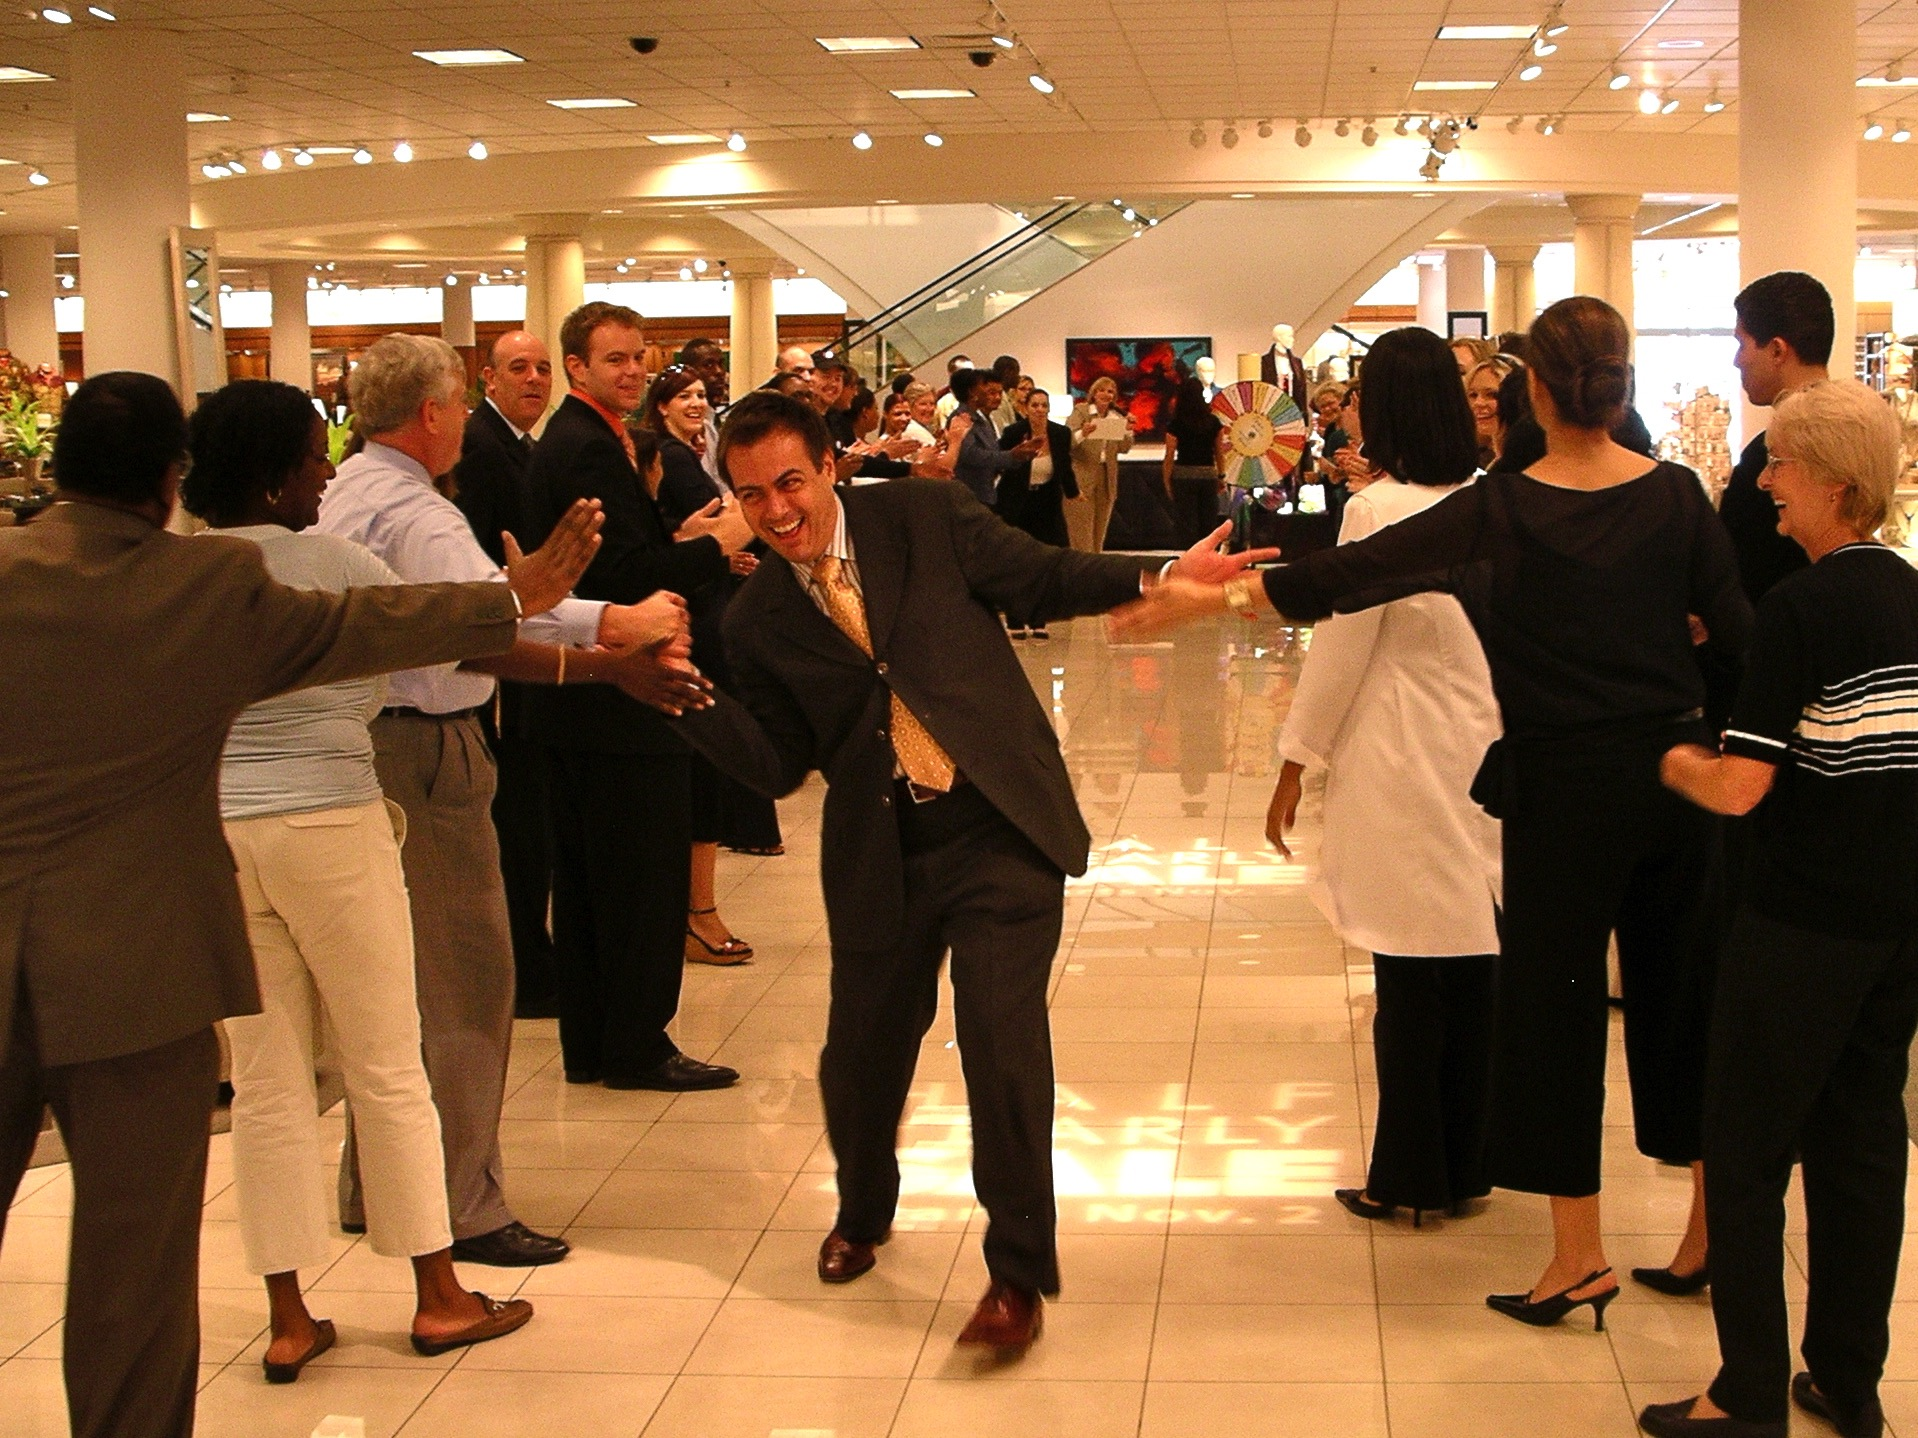 Morning lineup at Nordstrom, celebrating associates. Photo by J. Jeff Kober.